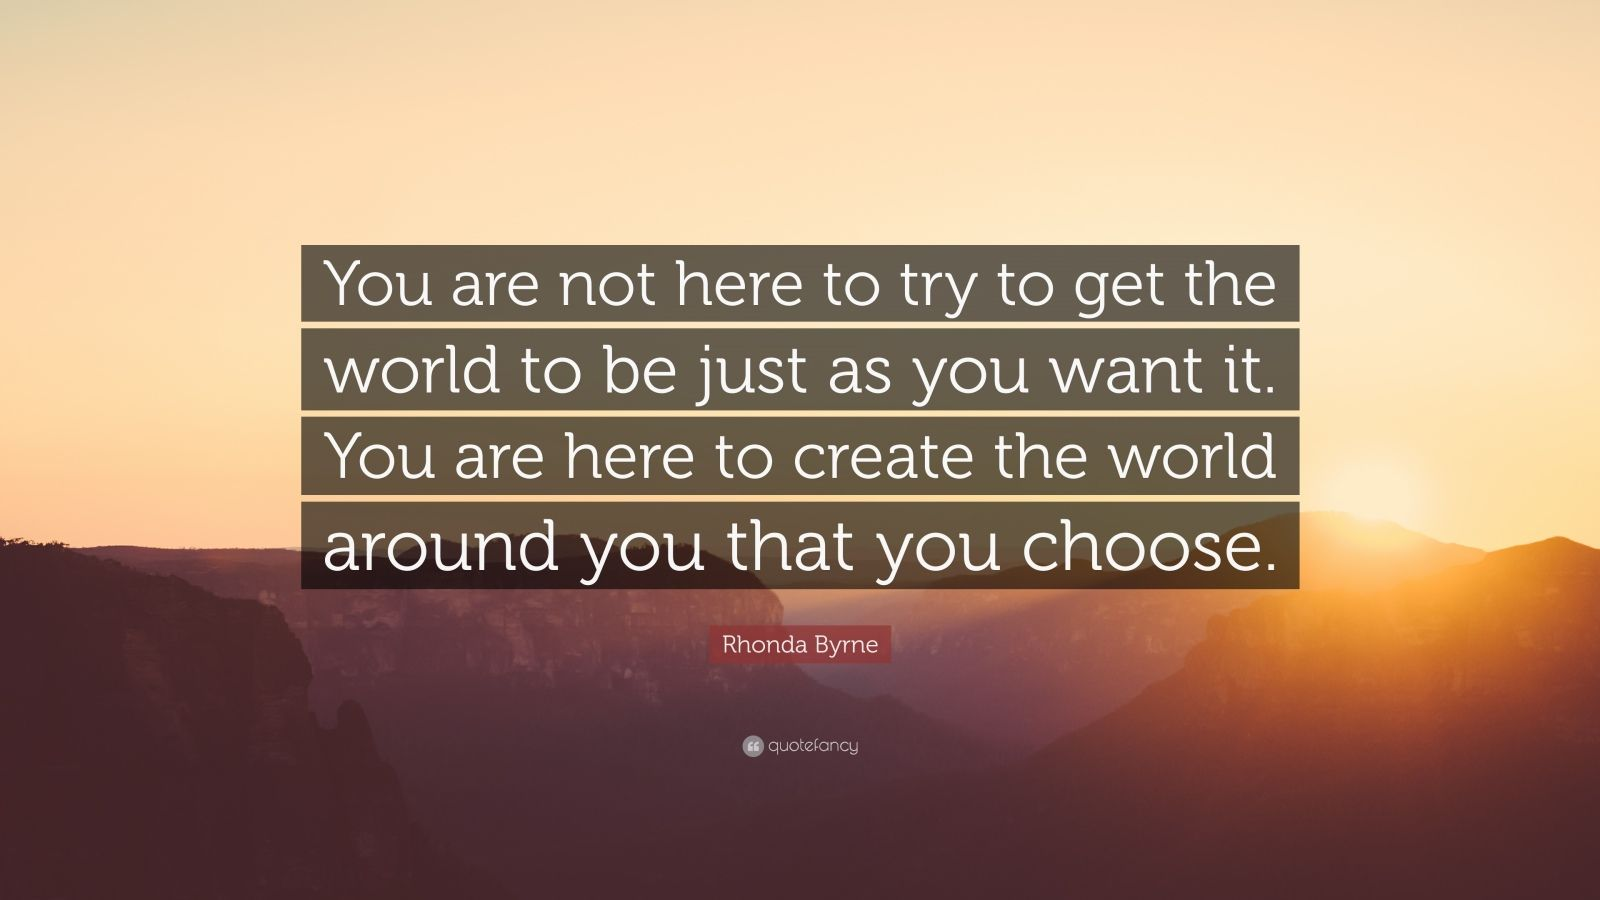 """Rhonda Byrne Quote: """"You are not here to try to get the world to be just as you want it. You are here to create the world around you that you choose."""""""